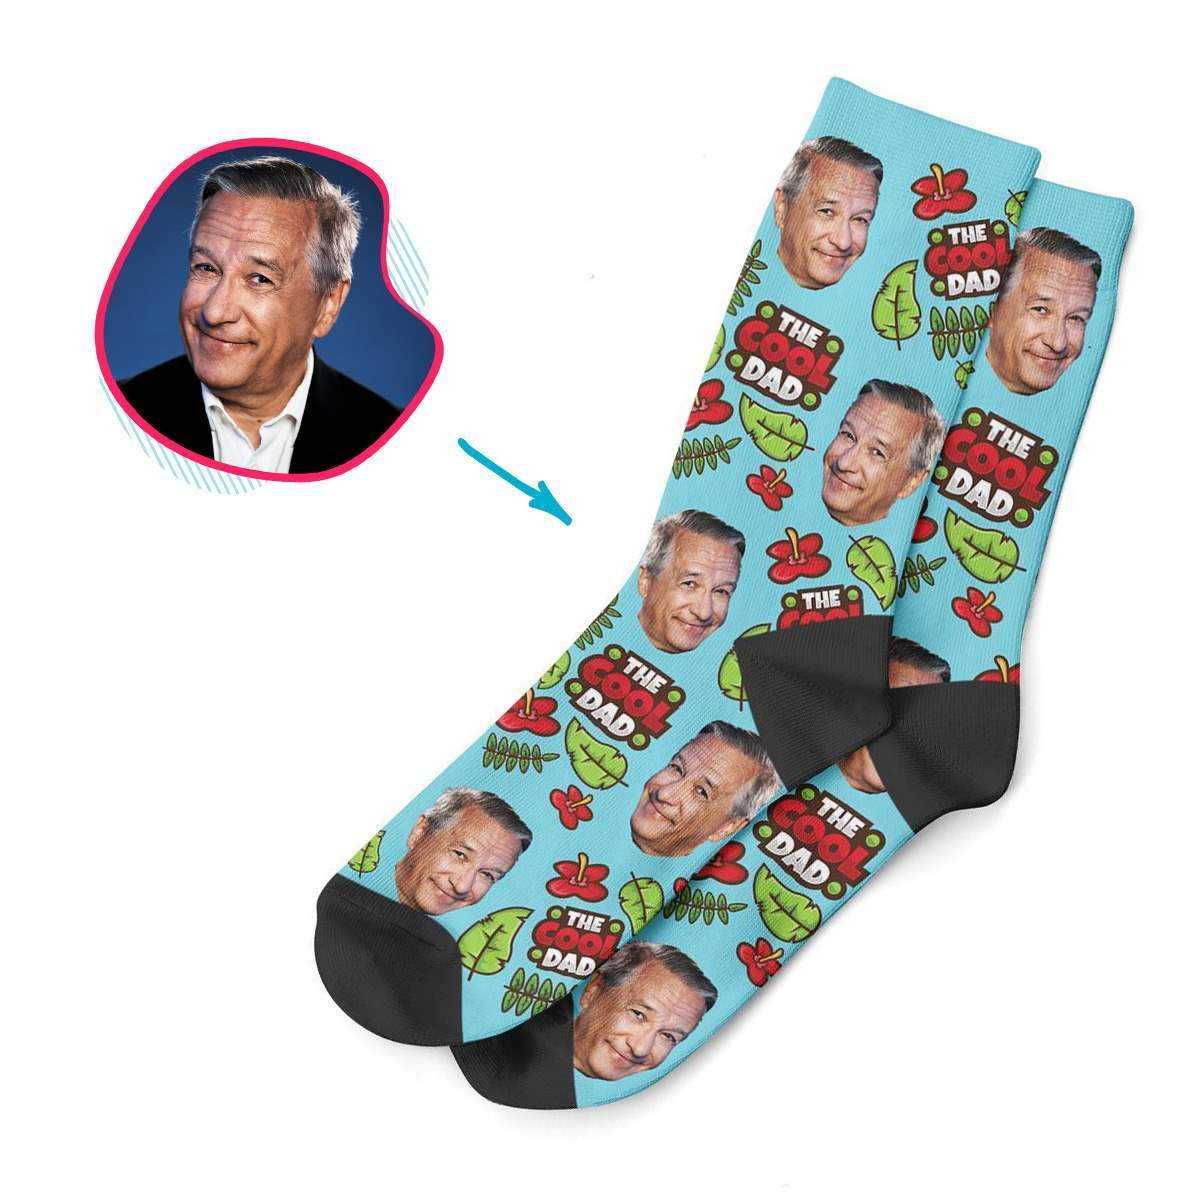 blue The Cool Dad socks personalized with photo of face printed on them